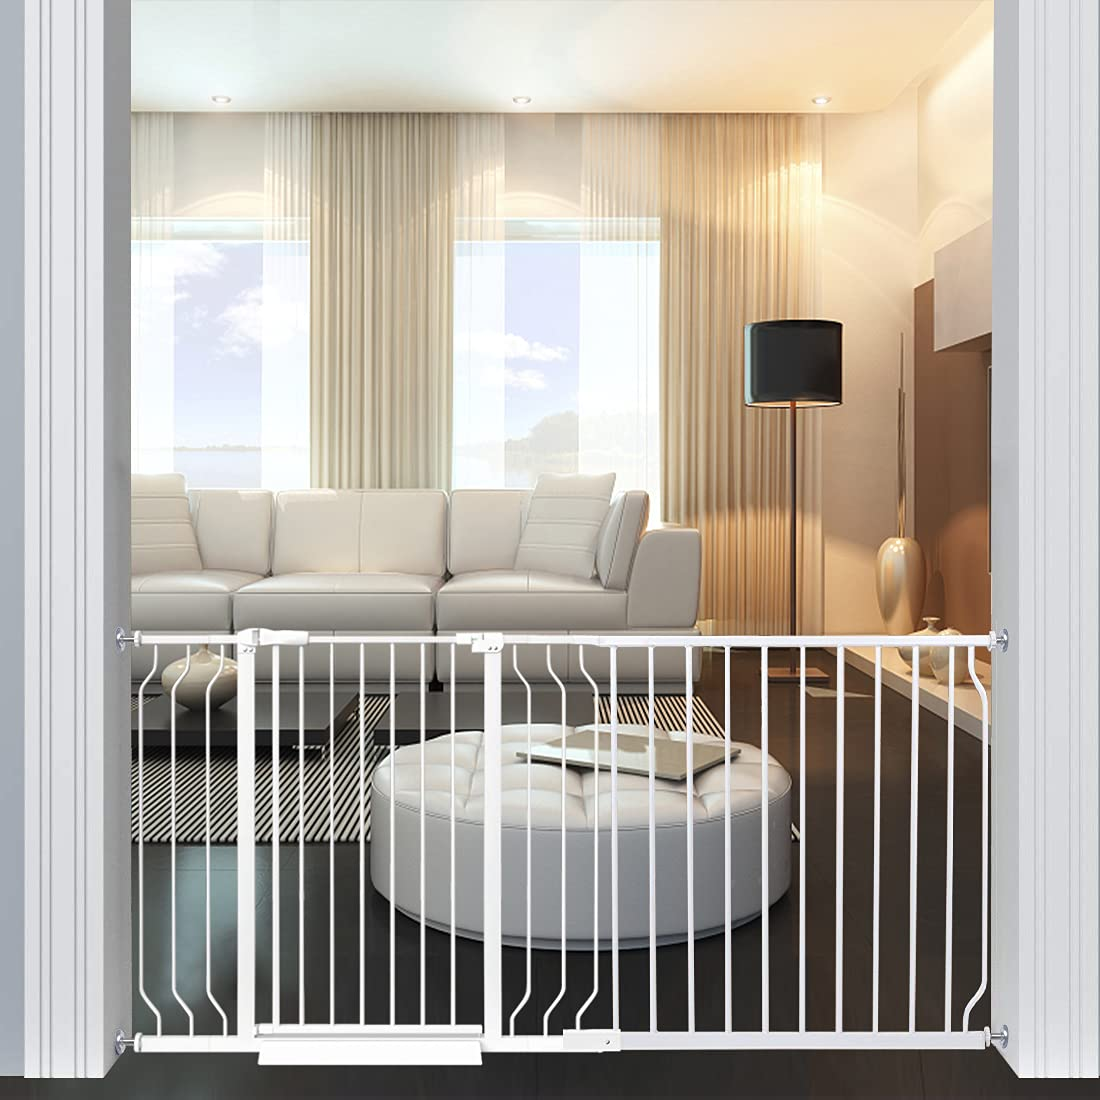 Extra Wide Baby Gate Dog Gate Pressure Mount White Black Metal Child Pet Gate Indoor Safety Gates for Stairs,Doorways,Kitchen and Living Room… (62